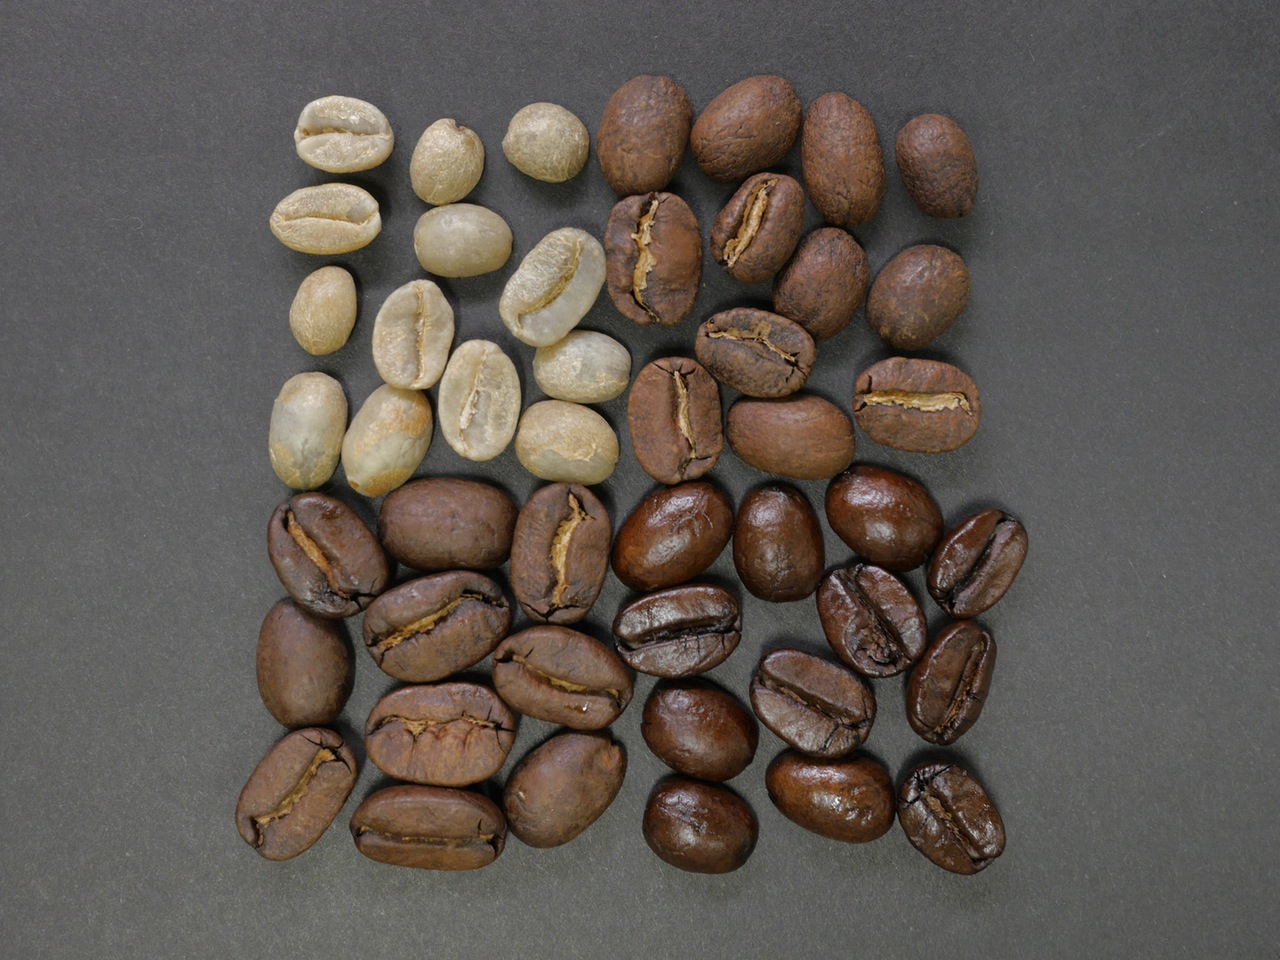 Roasted coffee beans - 4 levels of roasting